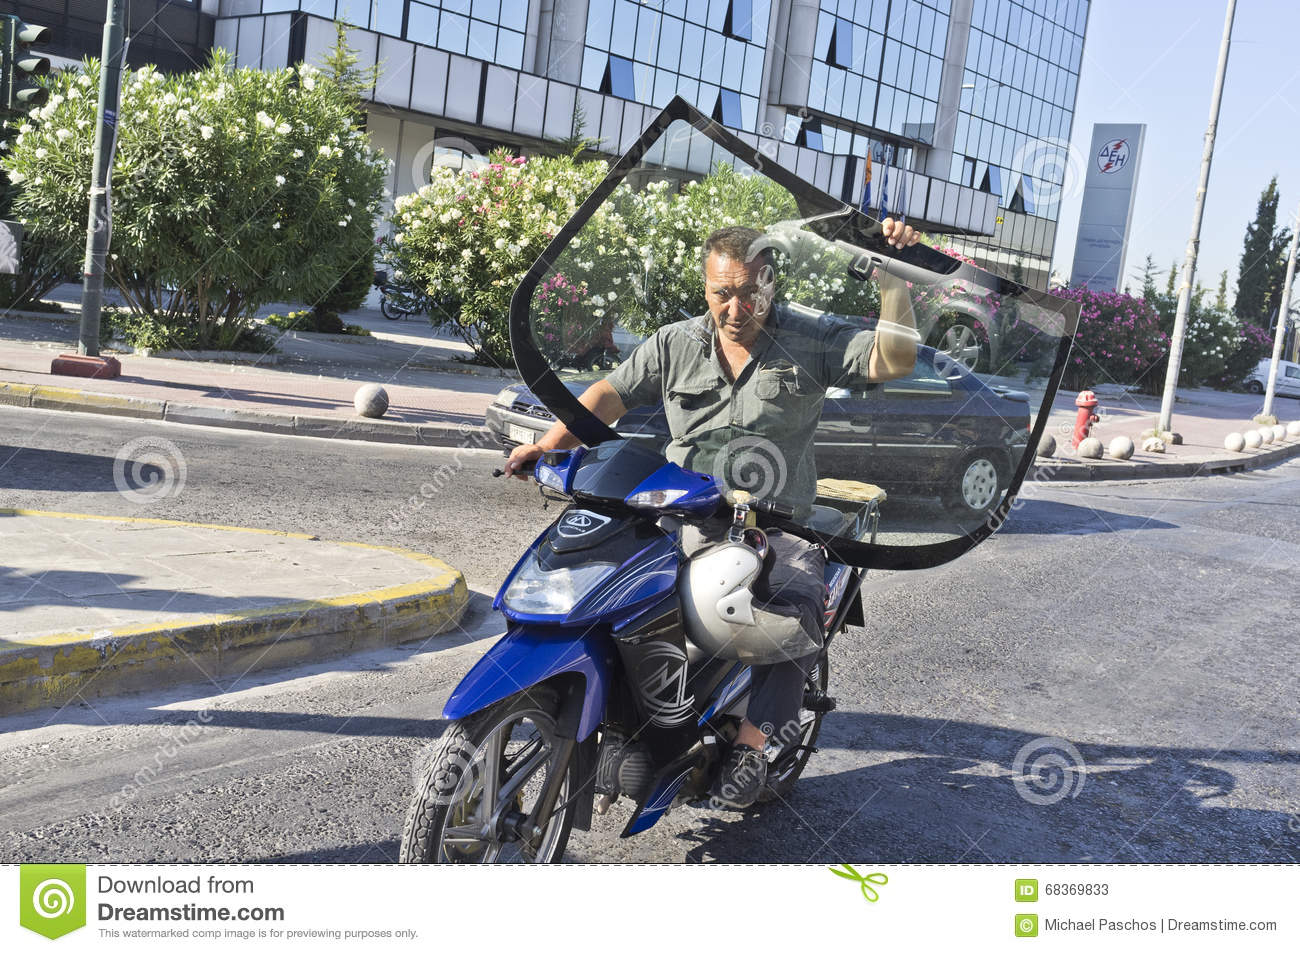 Dangerous Driving On Scooter Editorial Stock Photo - Image of